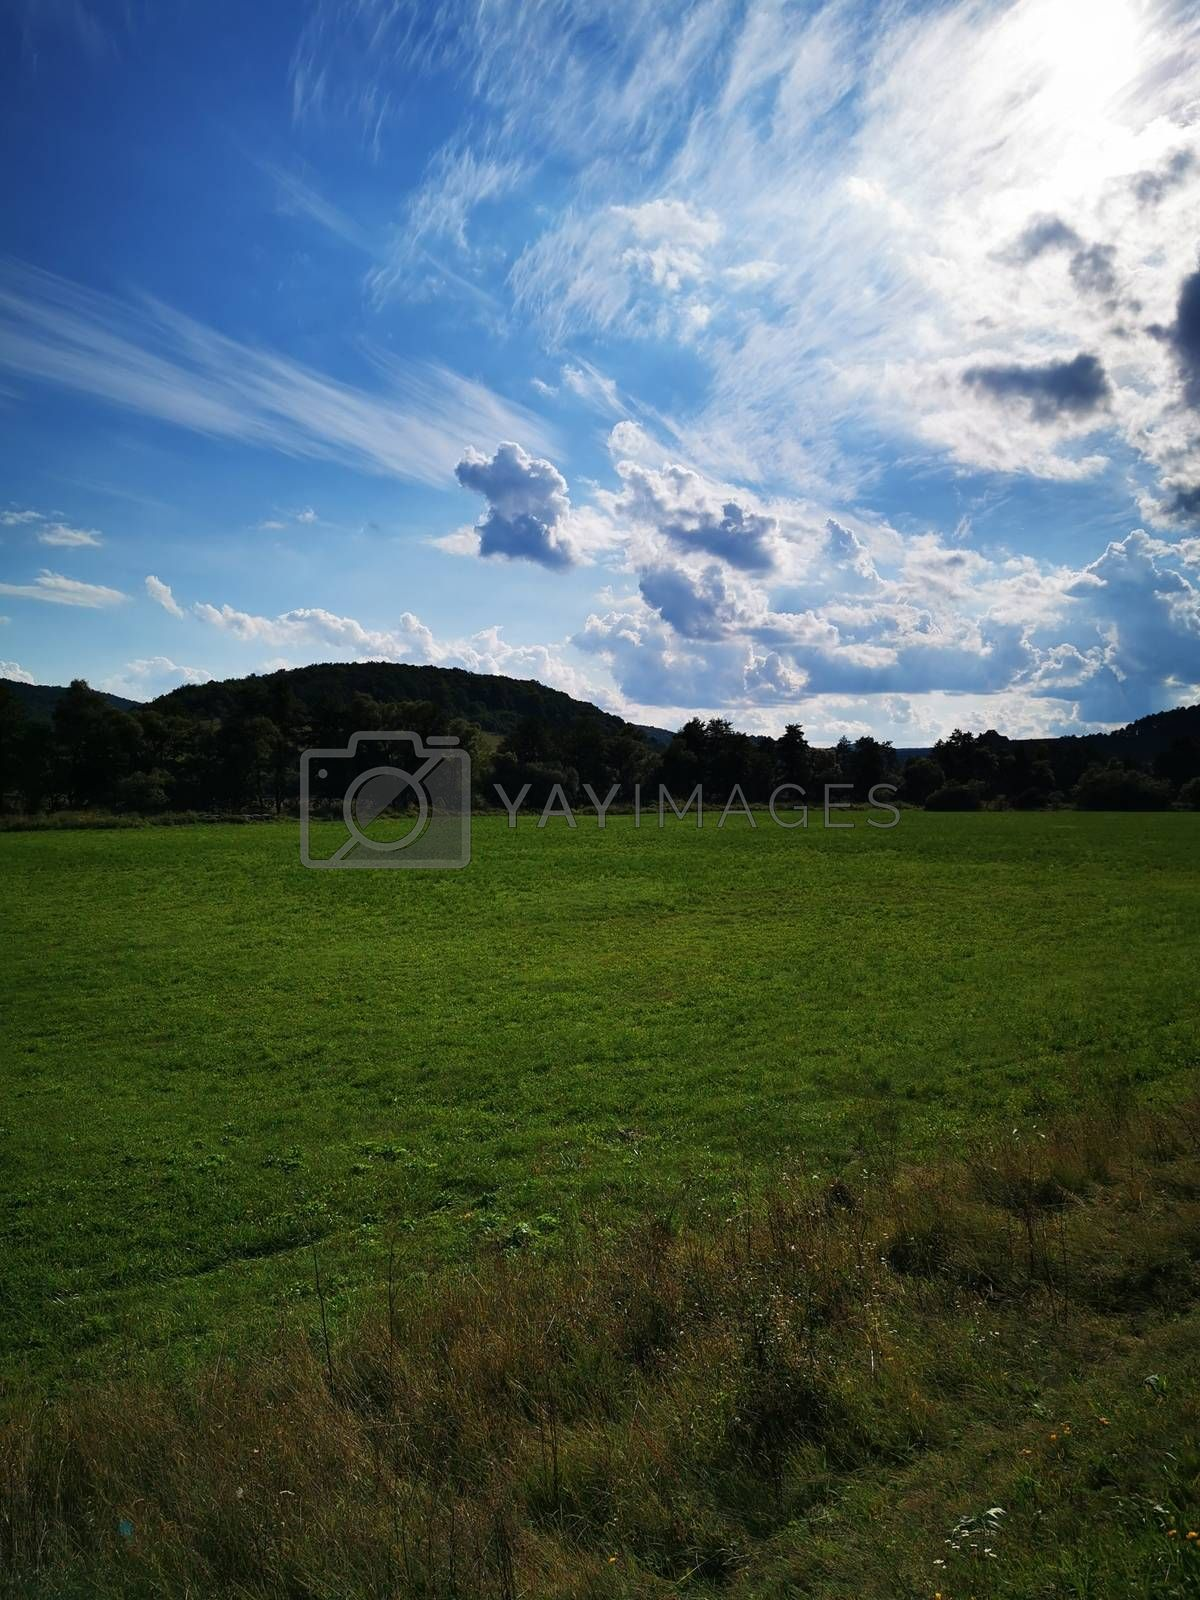 Royalty free image of A large green field with trees in the background by balage941